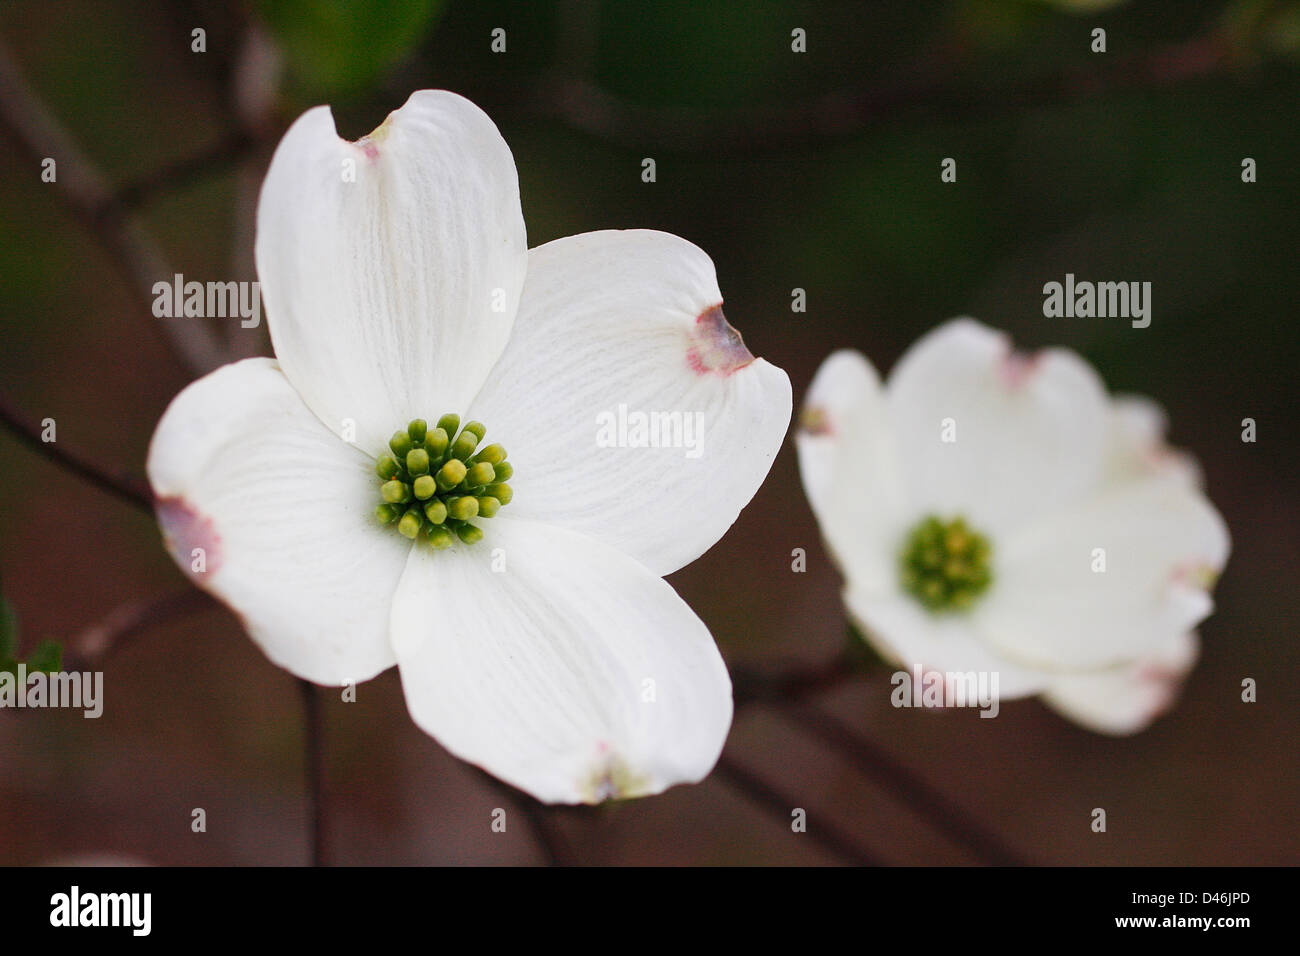 A close up of a Dogwood flower in bloom. The dog wood is North Carolina's State flower. Stock Photo